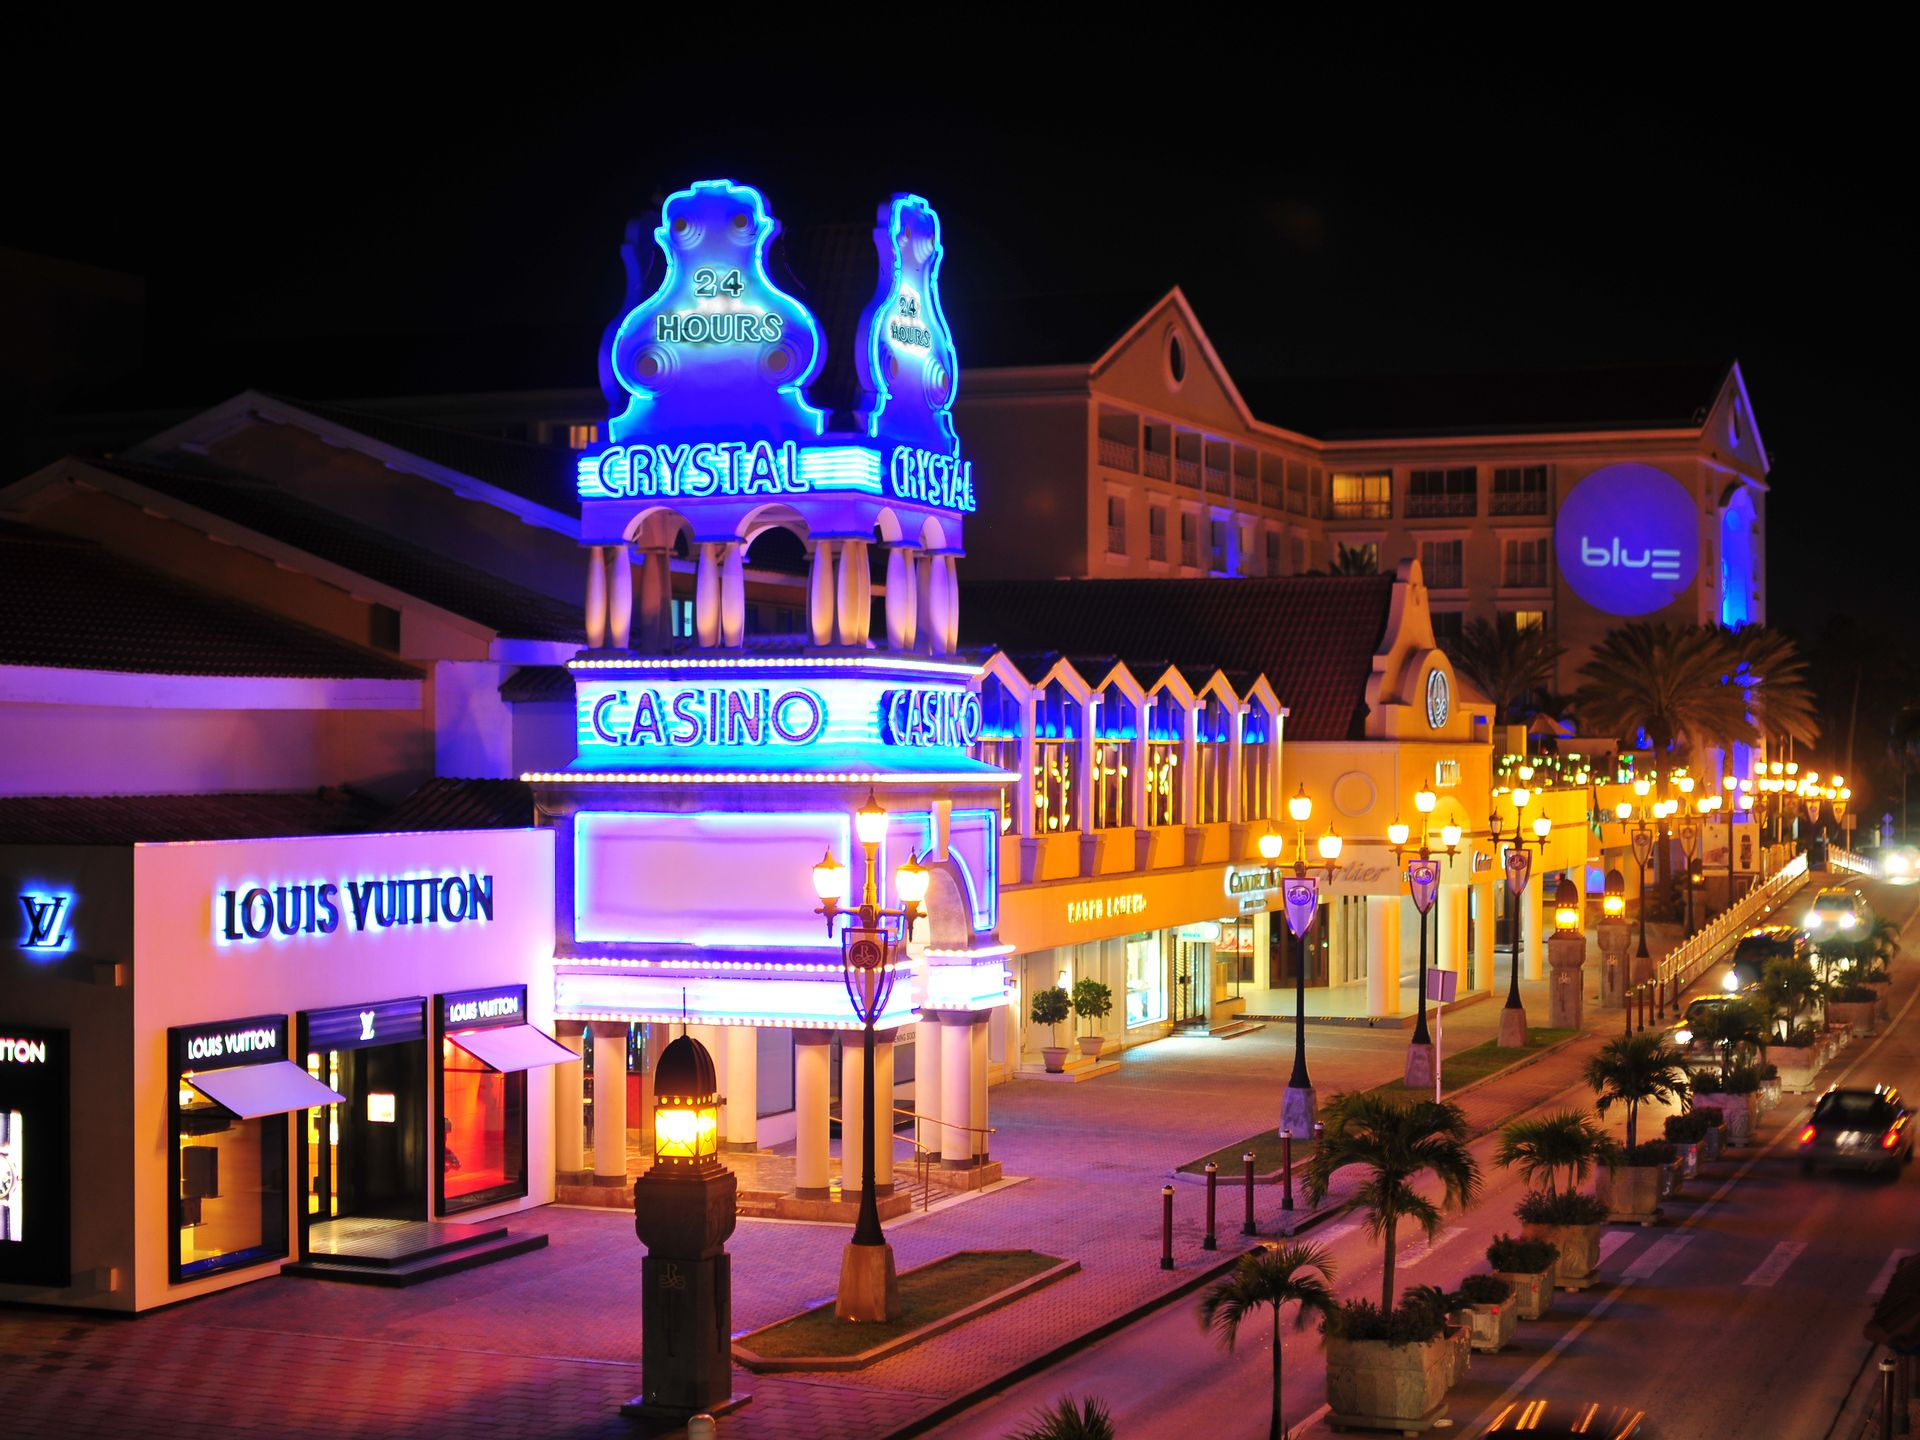 Seaport Casino Aruba